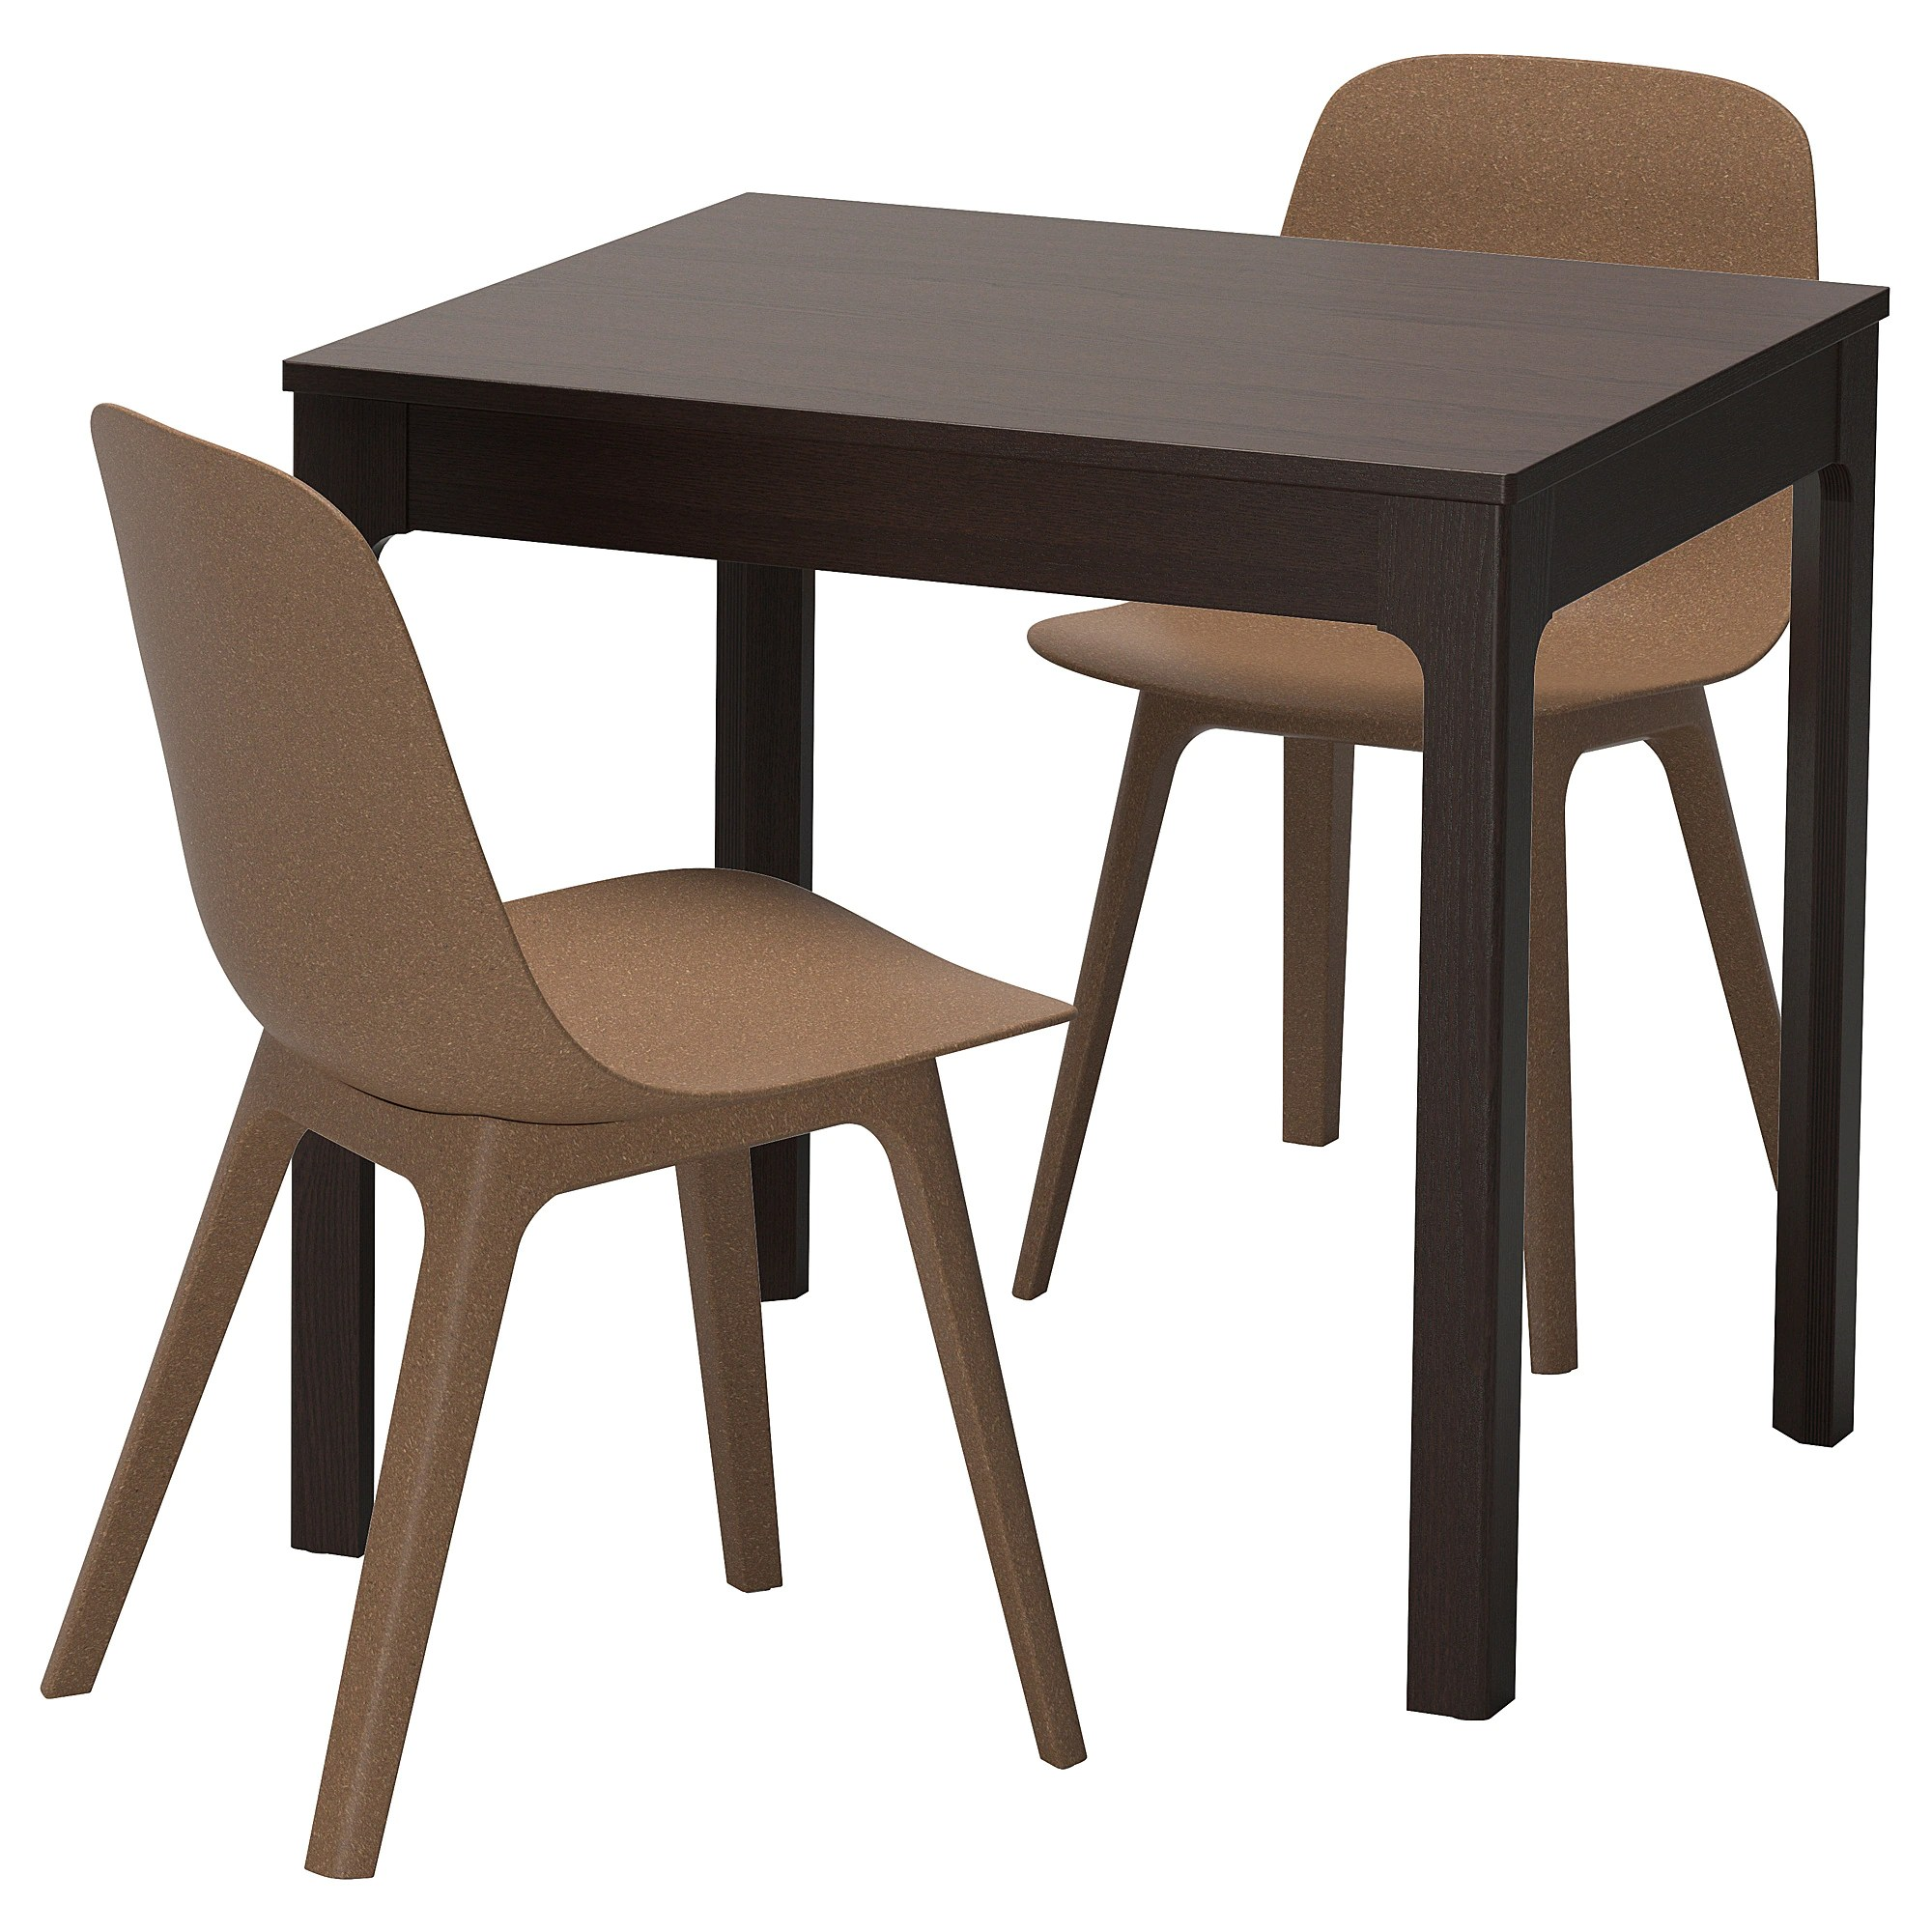 Table With 2 Chairs Ekedalen Odger Table And 2 Chairs Dark Brown Brown